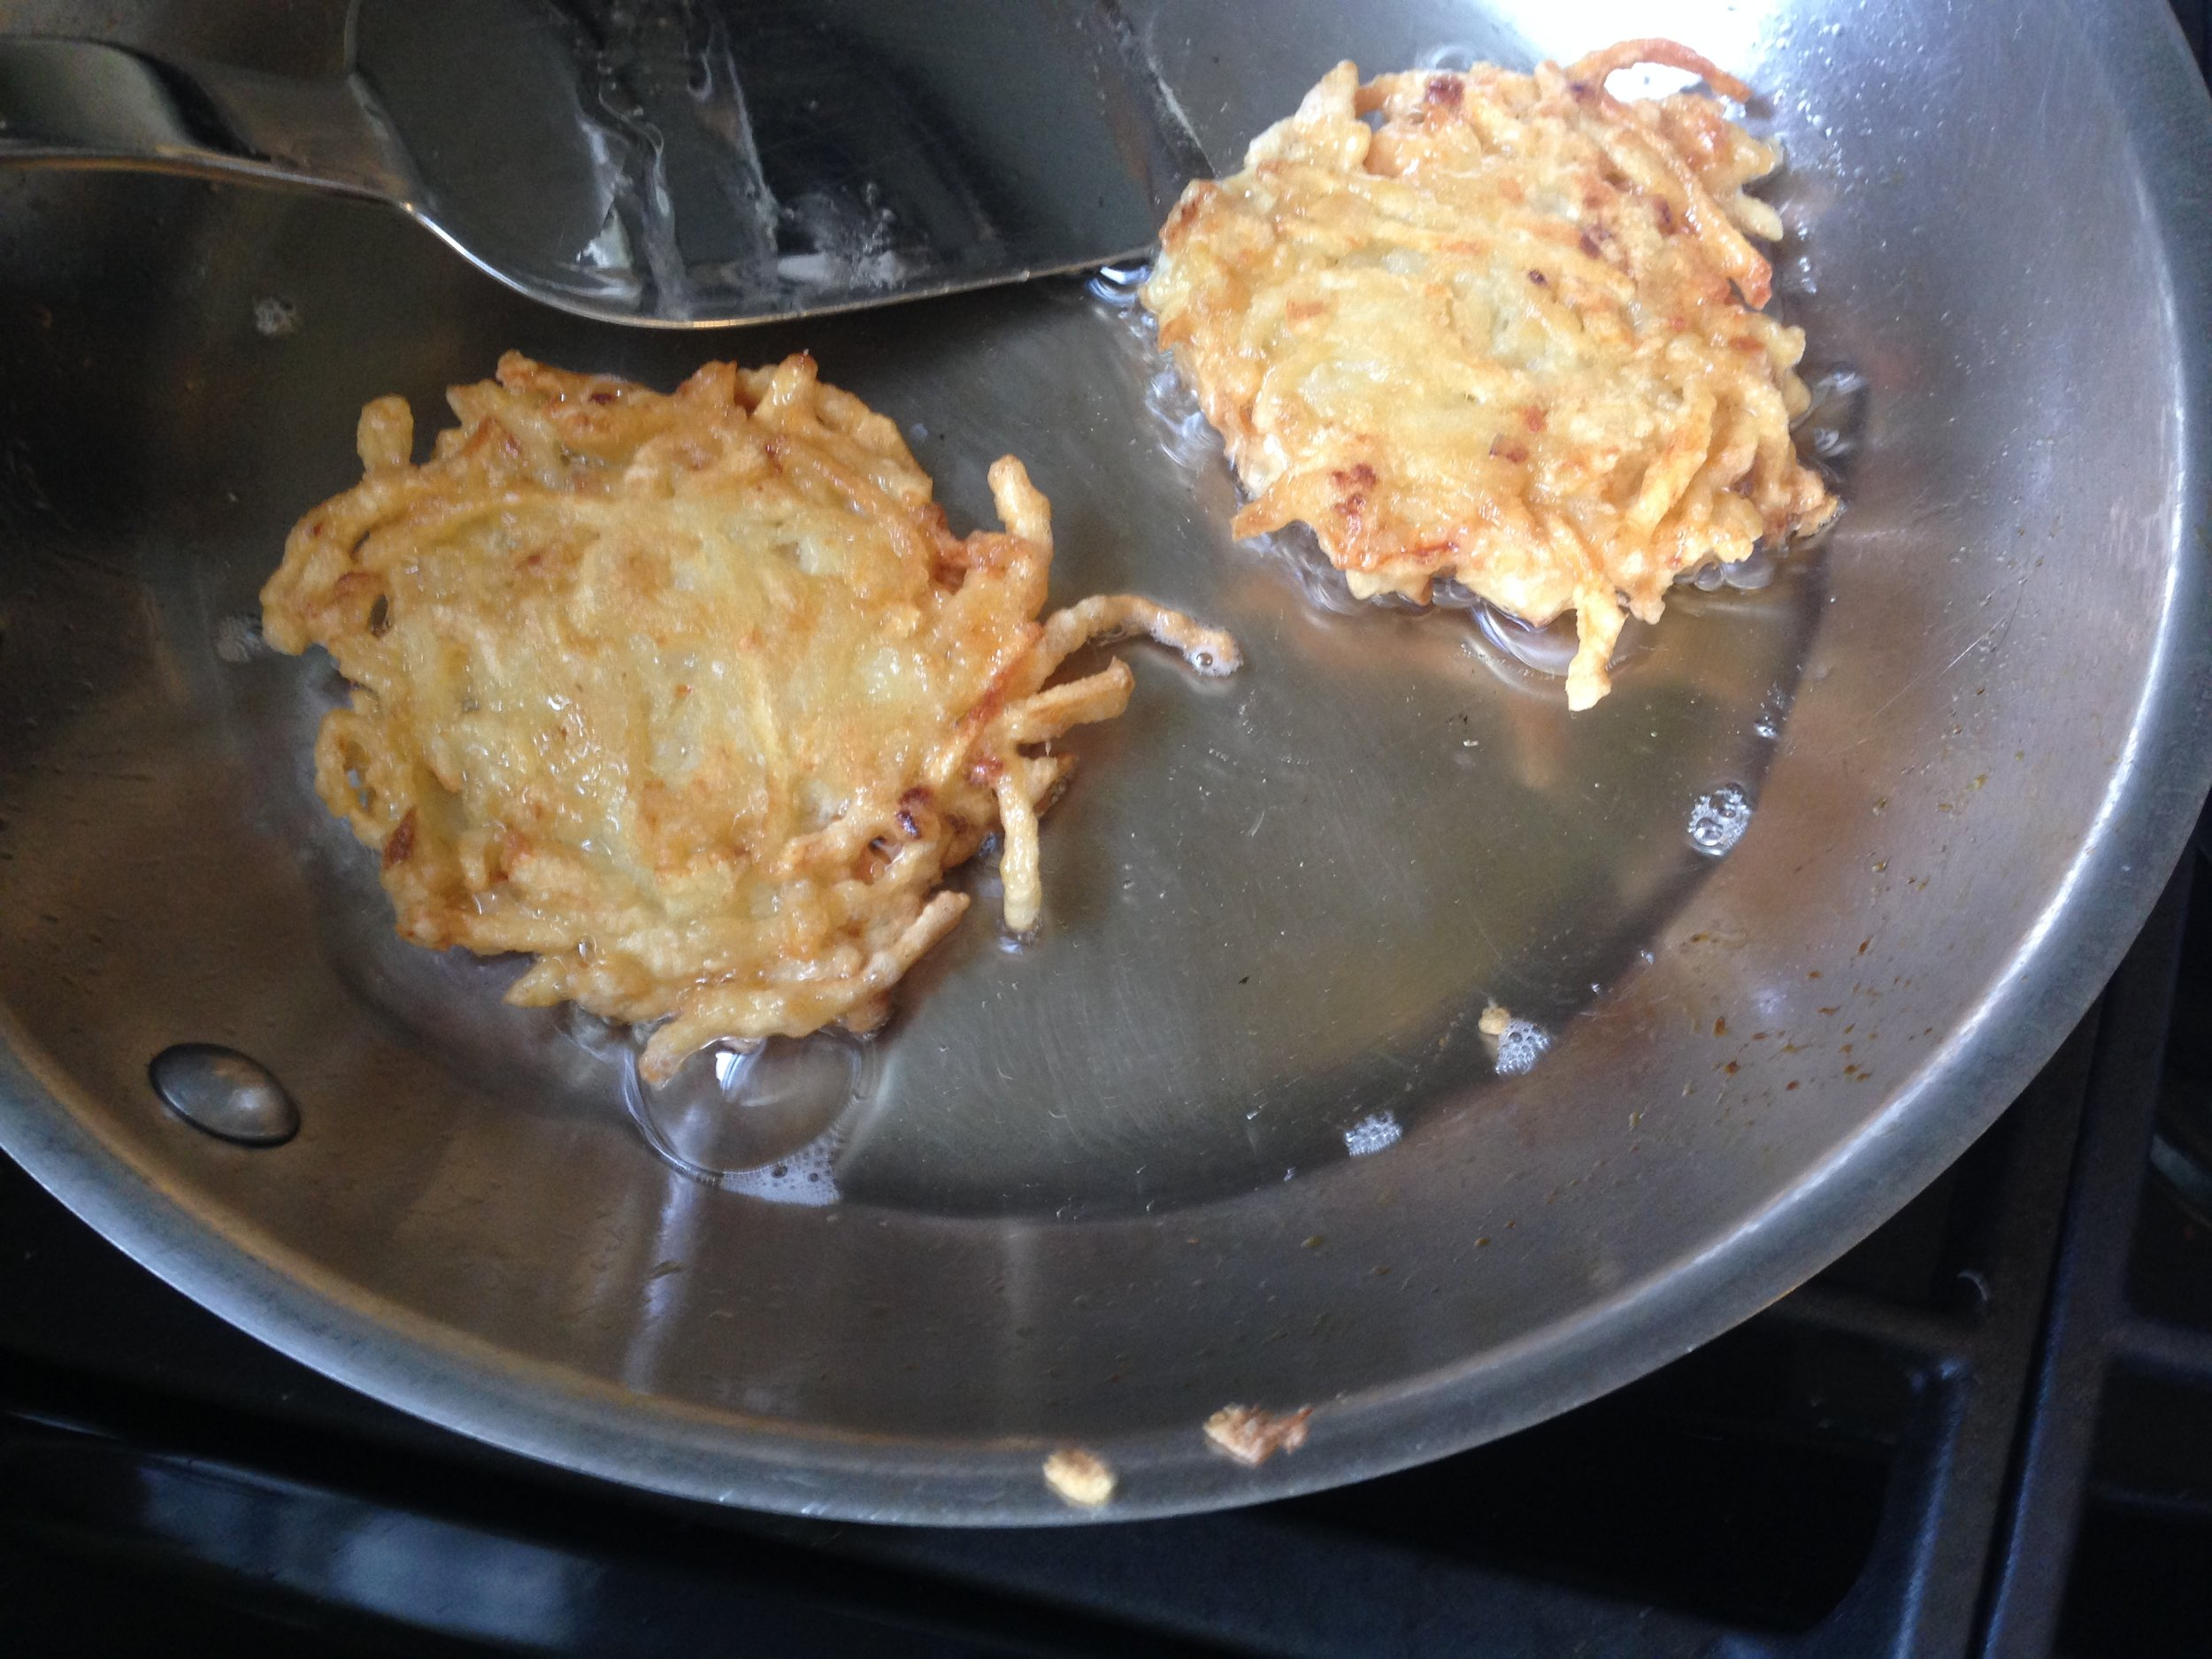 Frying up the Potato Pancakes